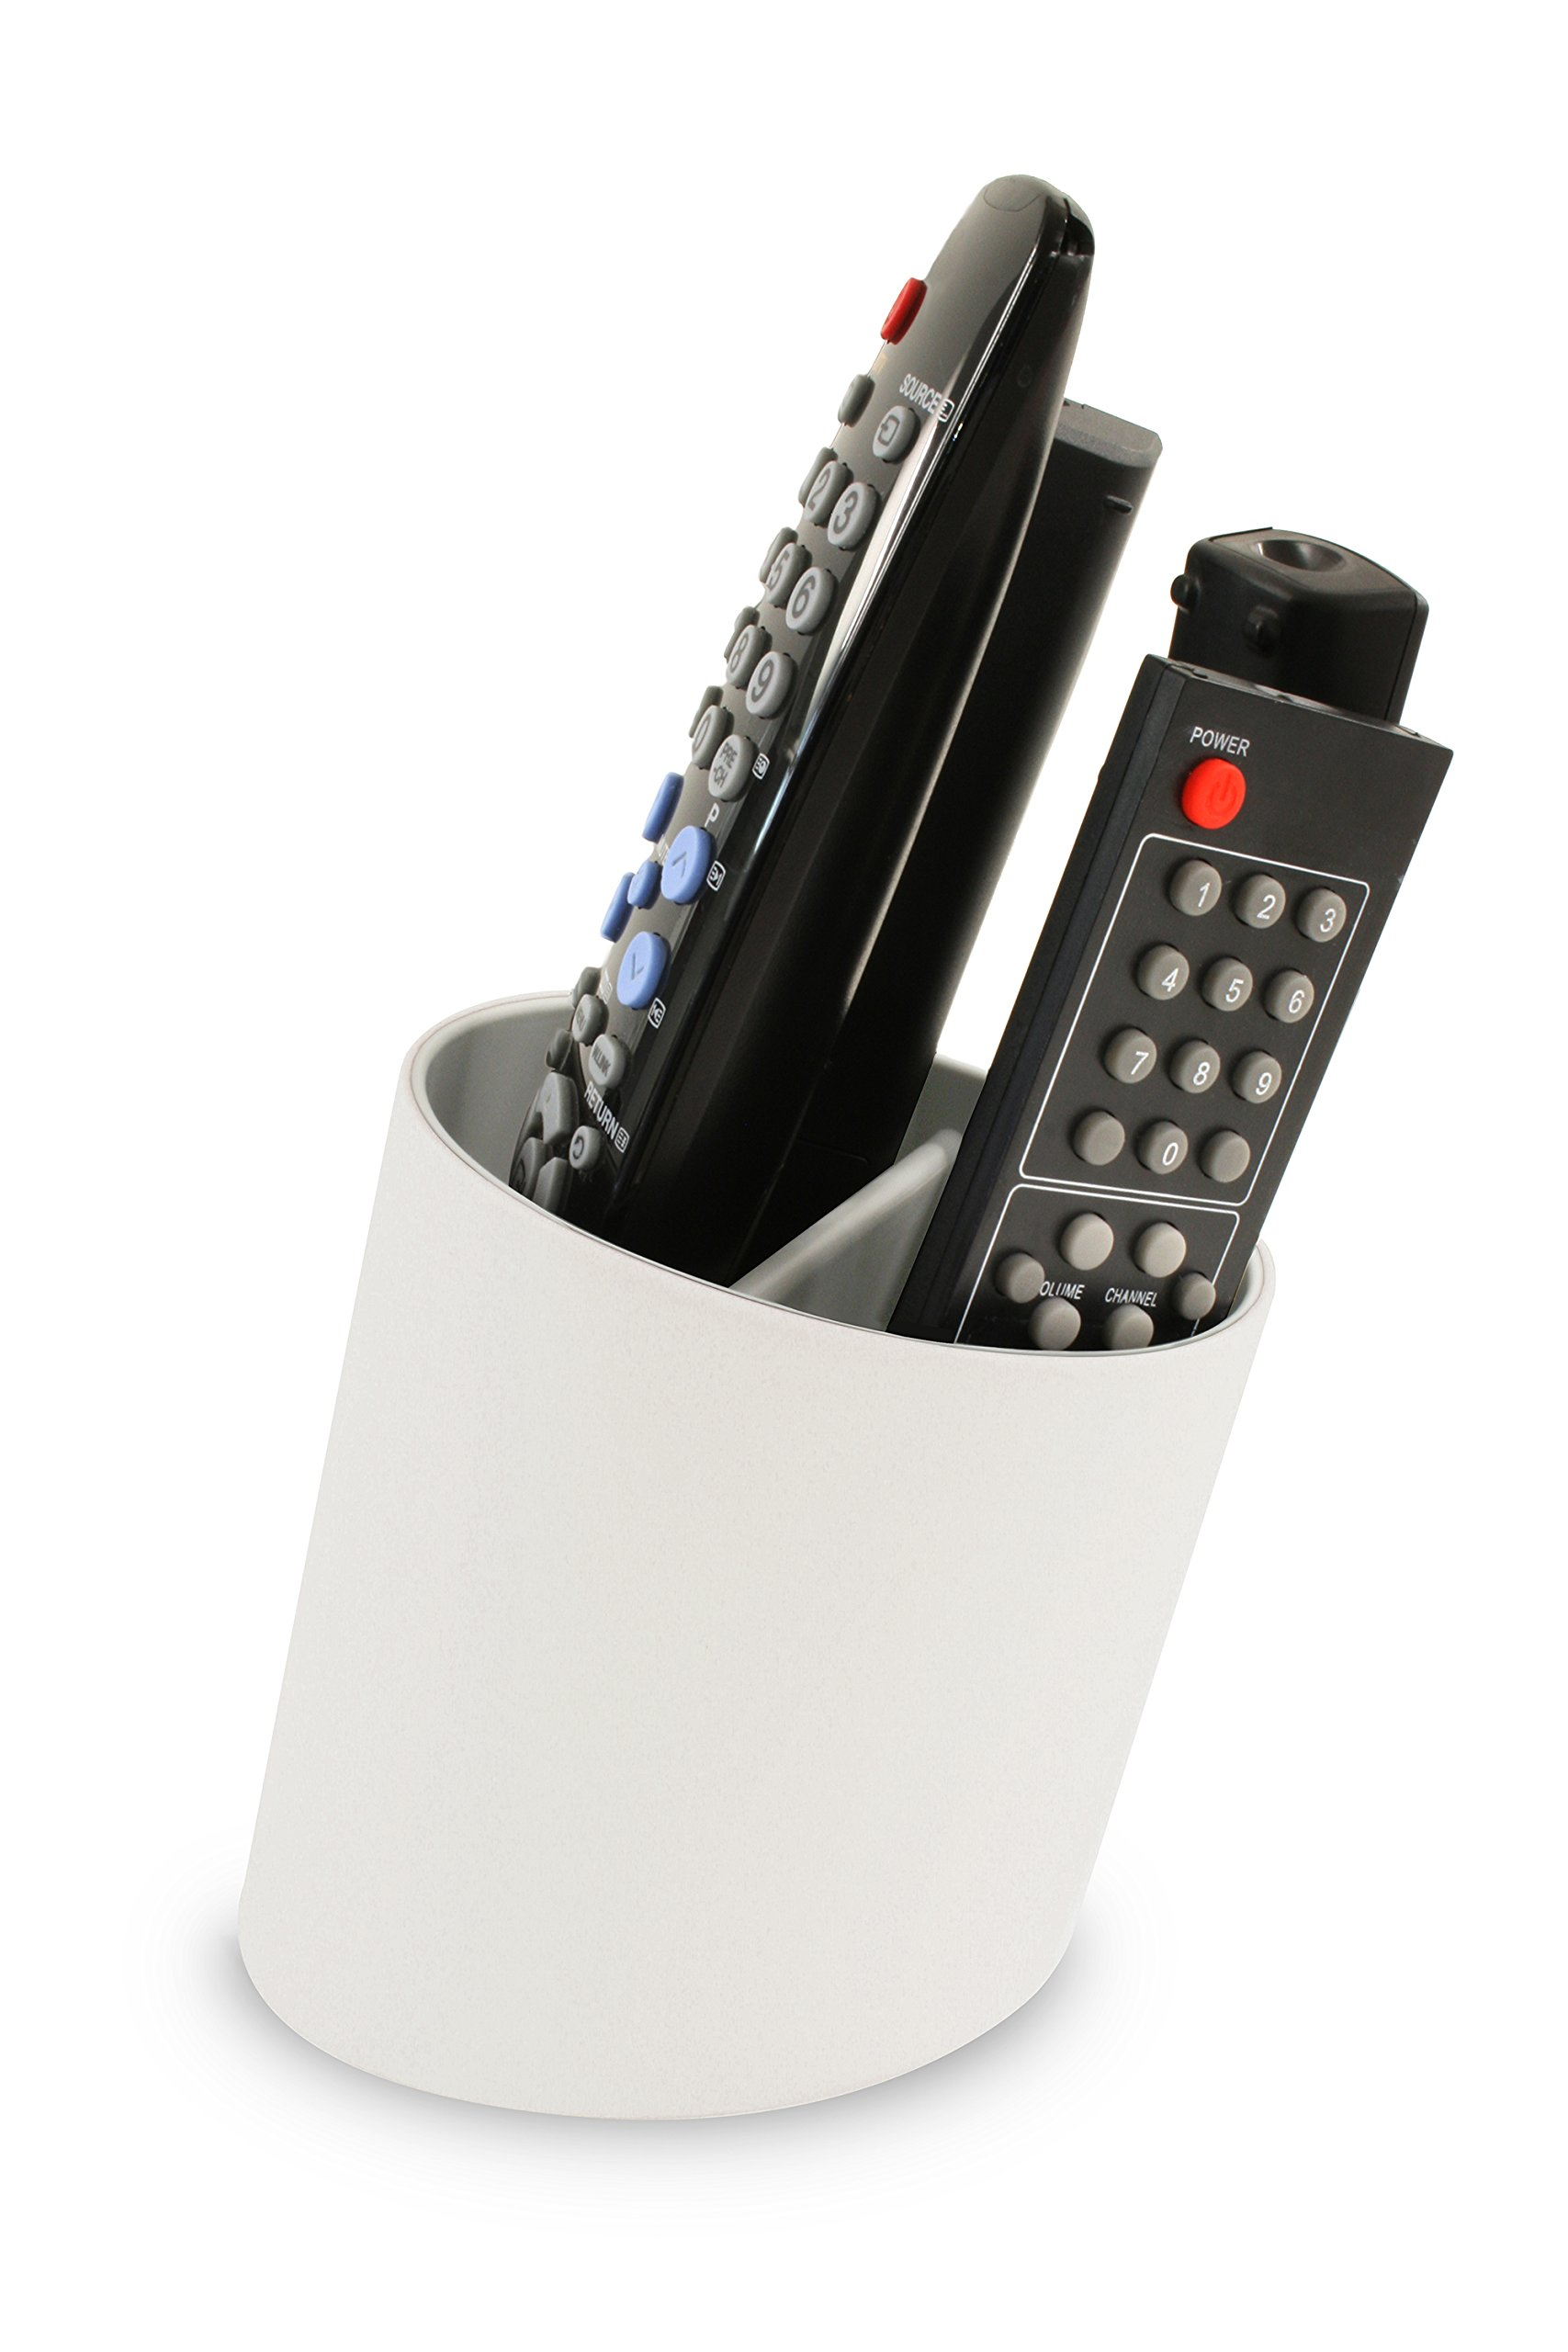 j-me Tilt Remote Control Tidy Remote Holder and TV Remote Organizer (White/Grey) by j-me